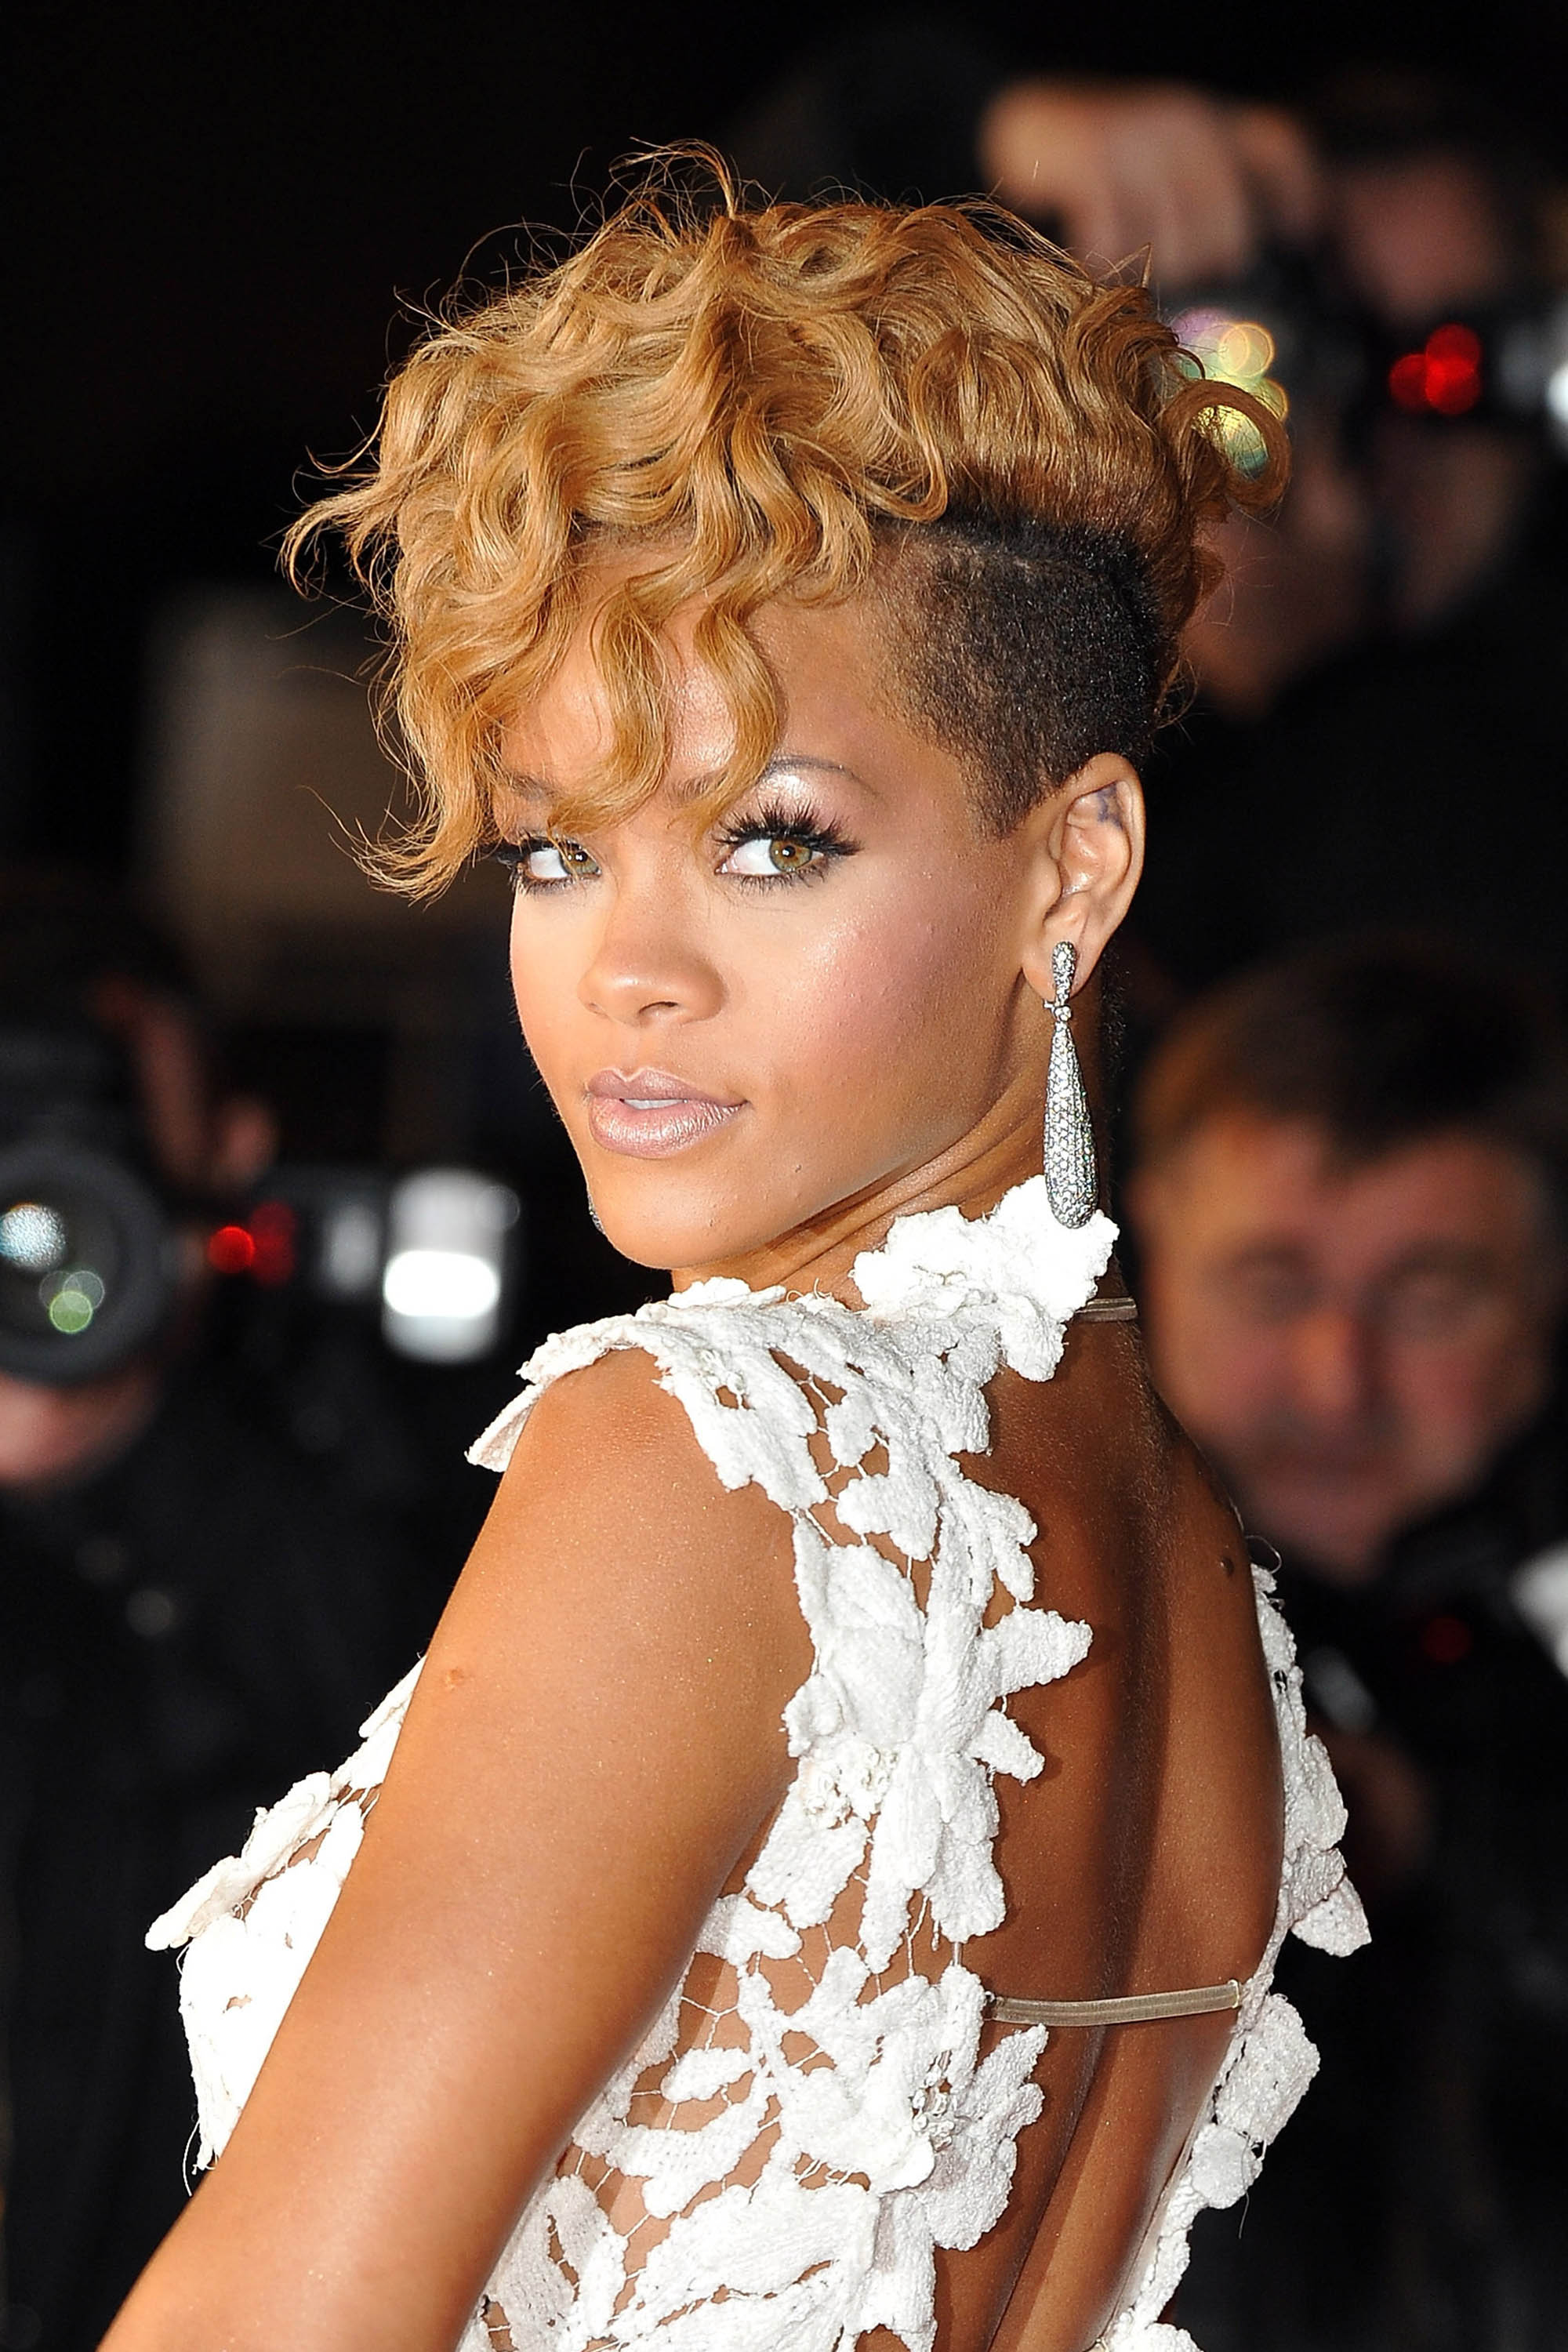 Remarkable 50 Best Rihanna Hairstyles Our Favorite Rihanna Hair Looks Of Short Hairstyles Gunalazisus